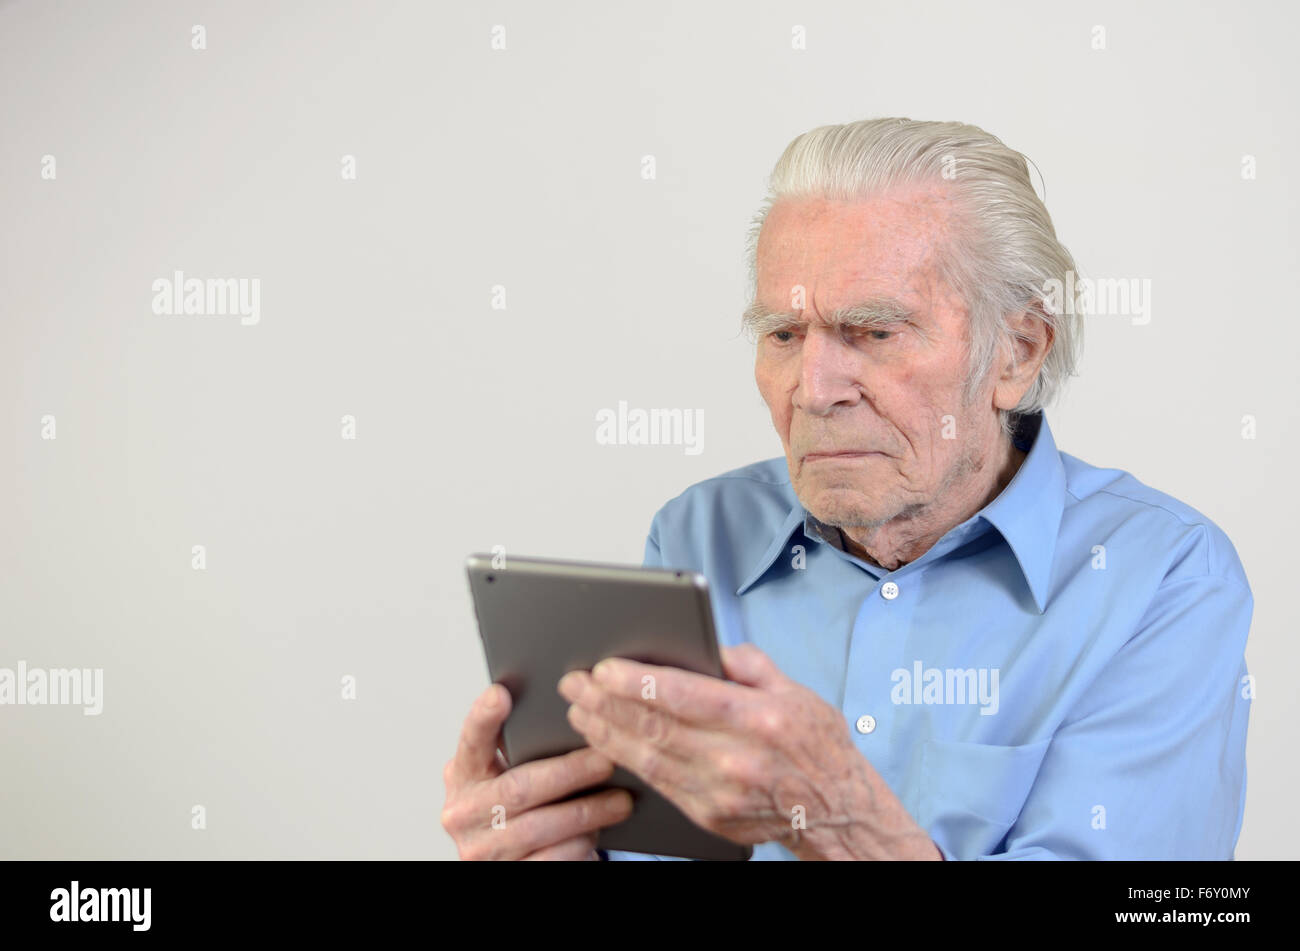 Elderly man with blue shirt holding a modern tablet PC while looking at it with a nostalgic facial expression in - Stock Image